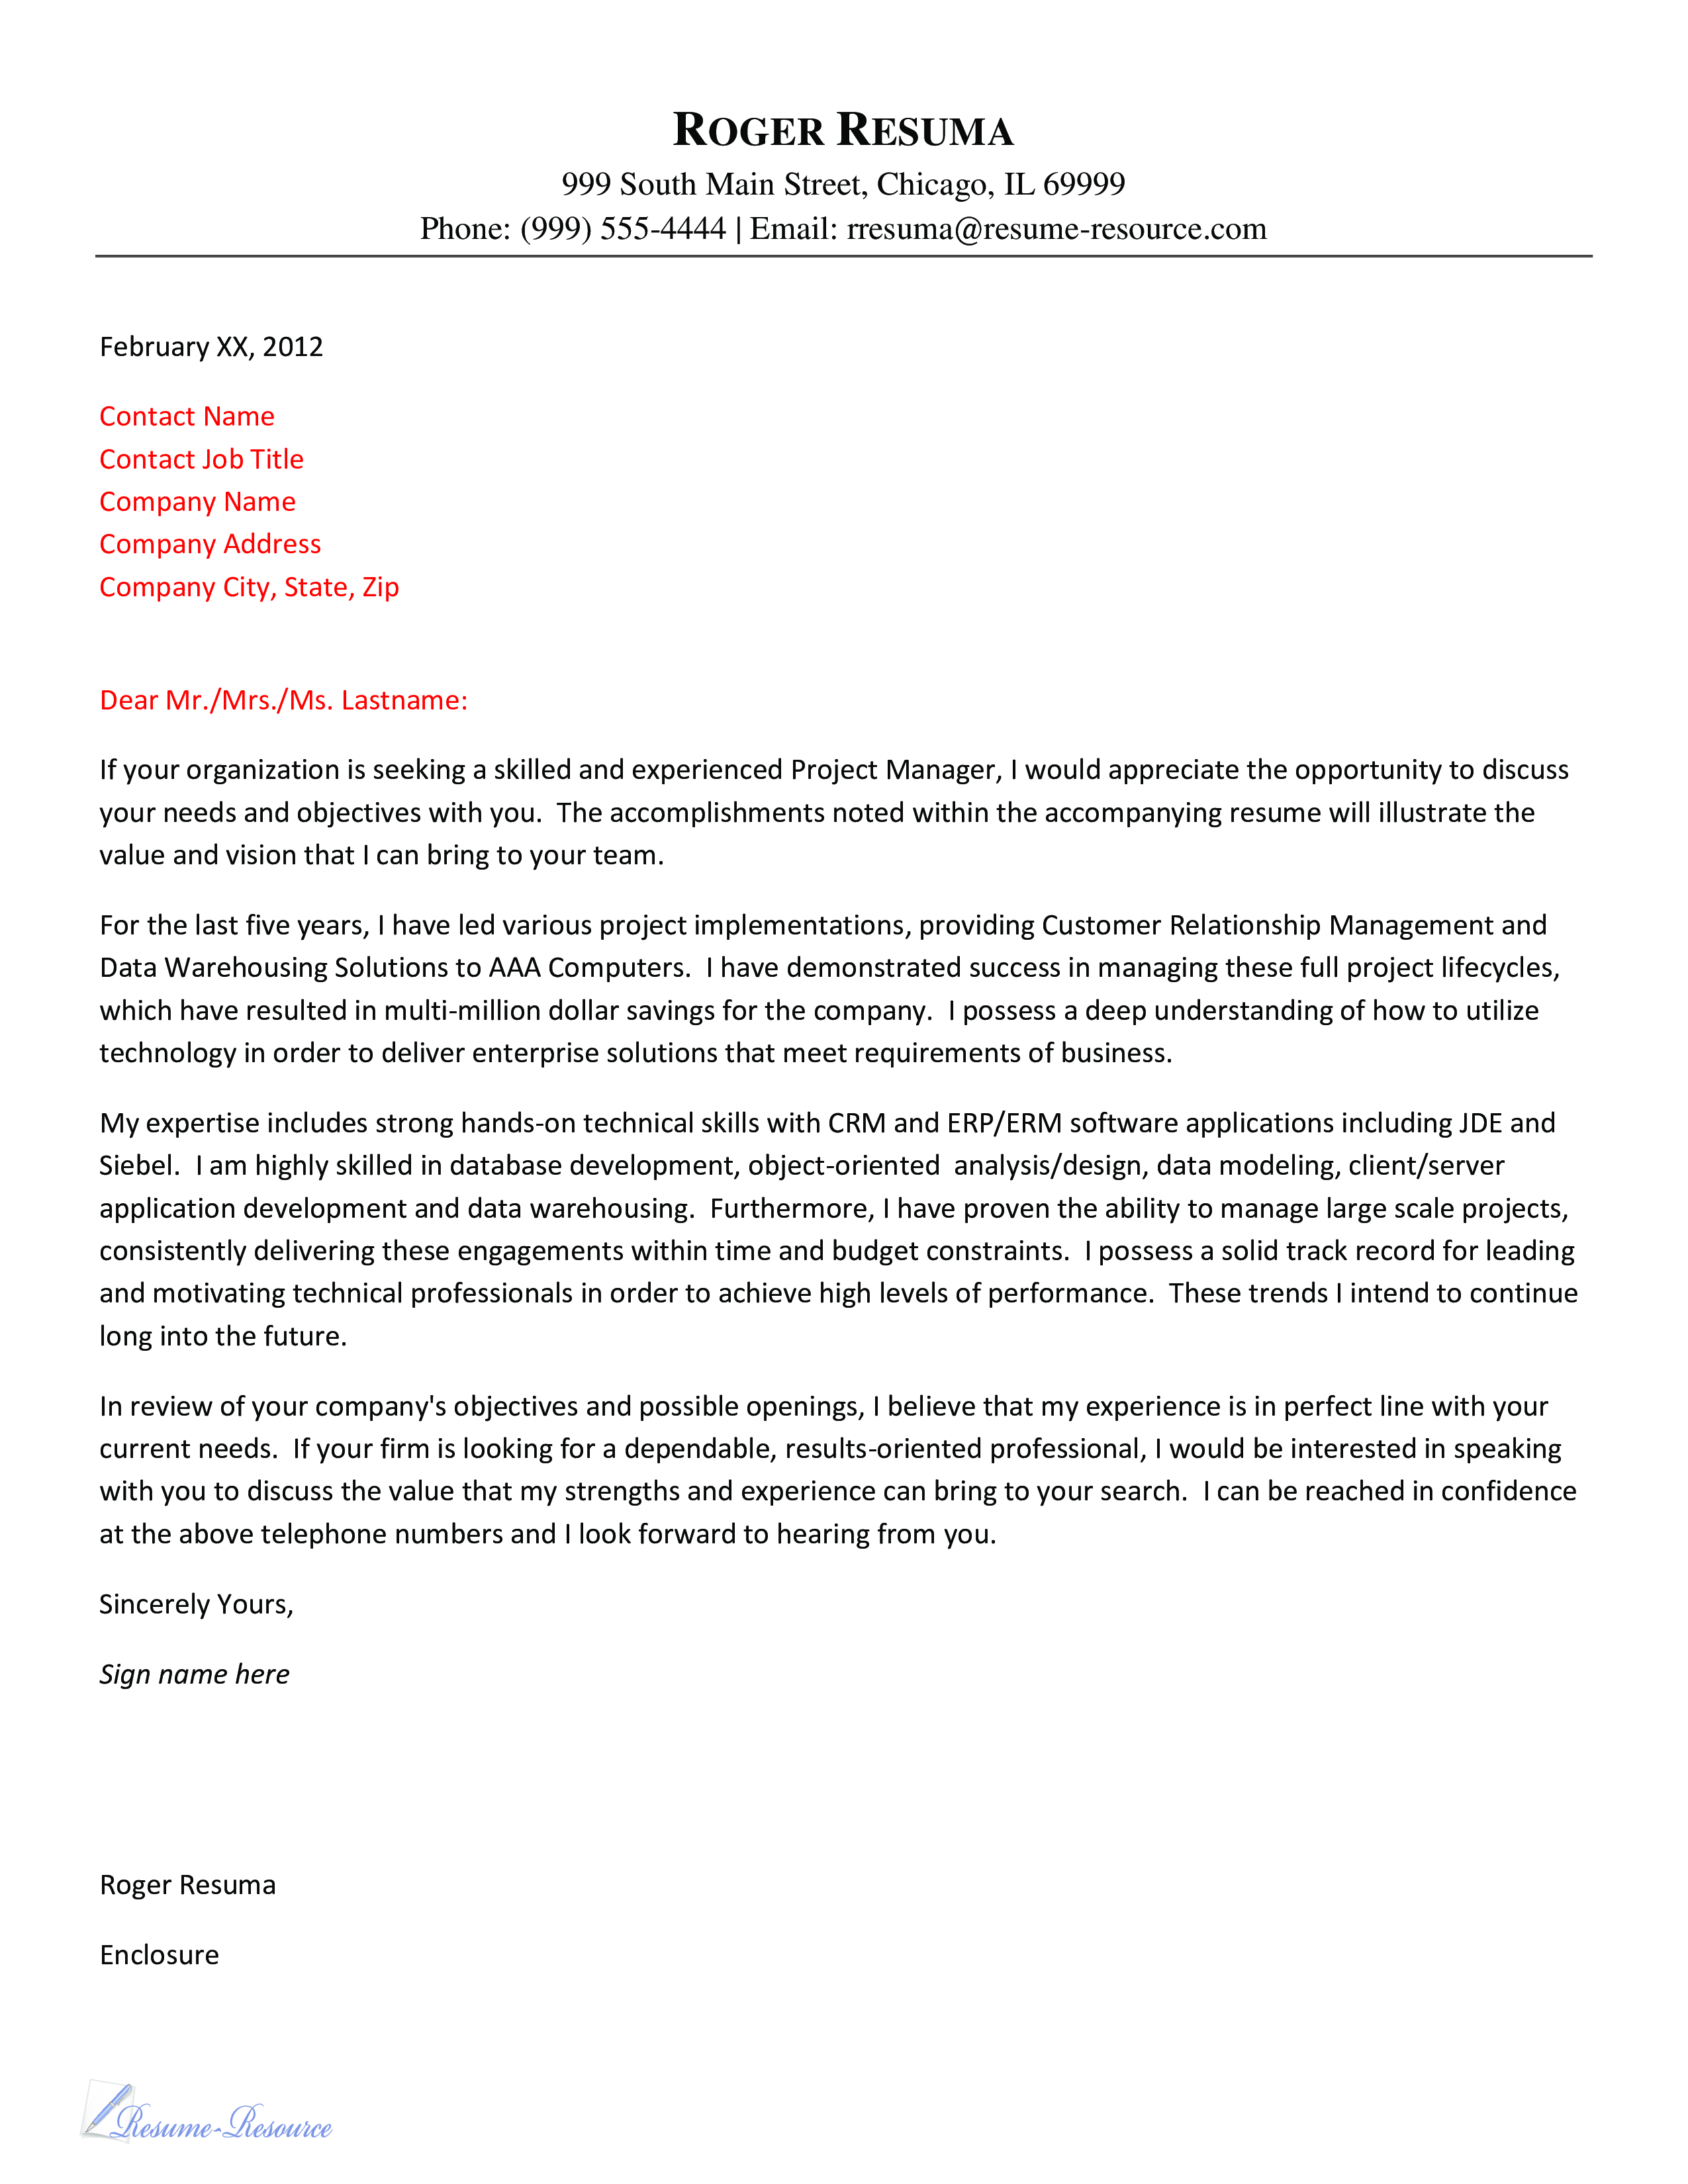 Free Cover letter Customer Relationship Manager | Templates at ...